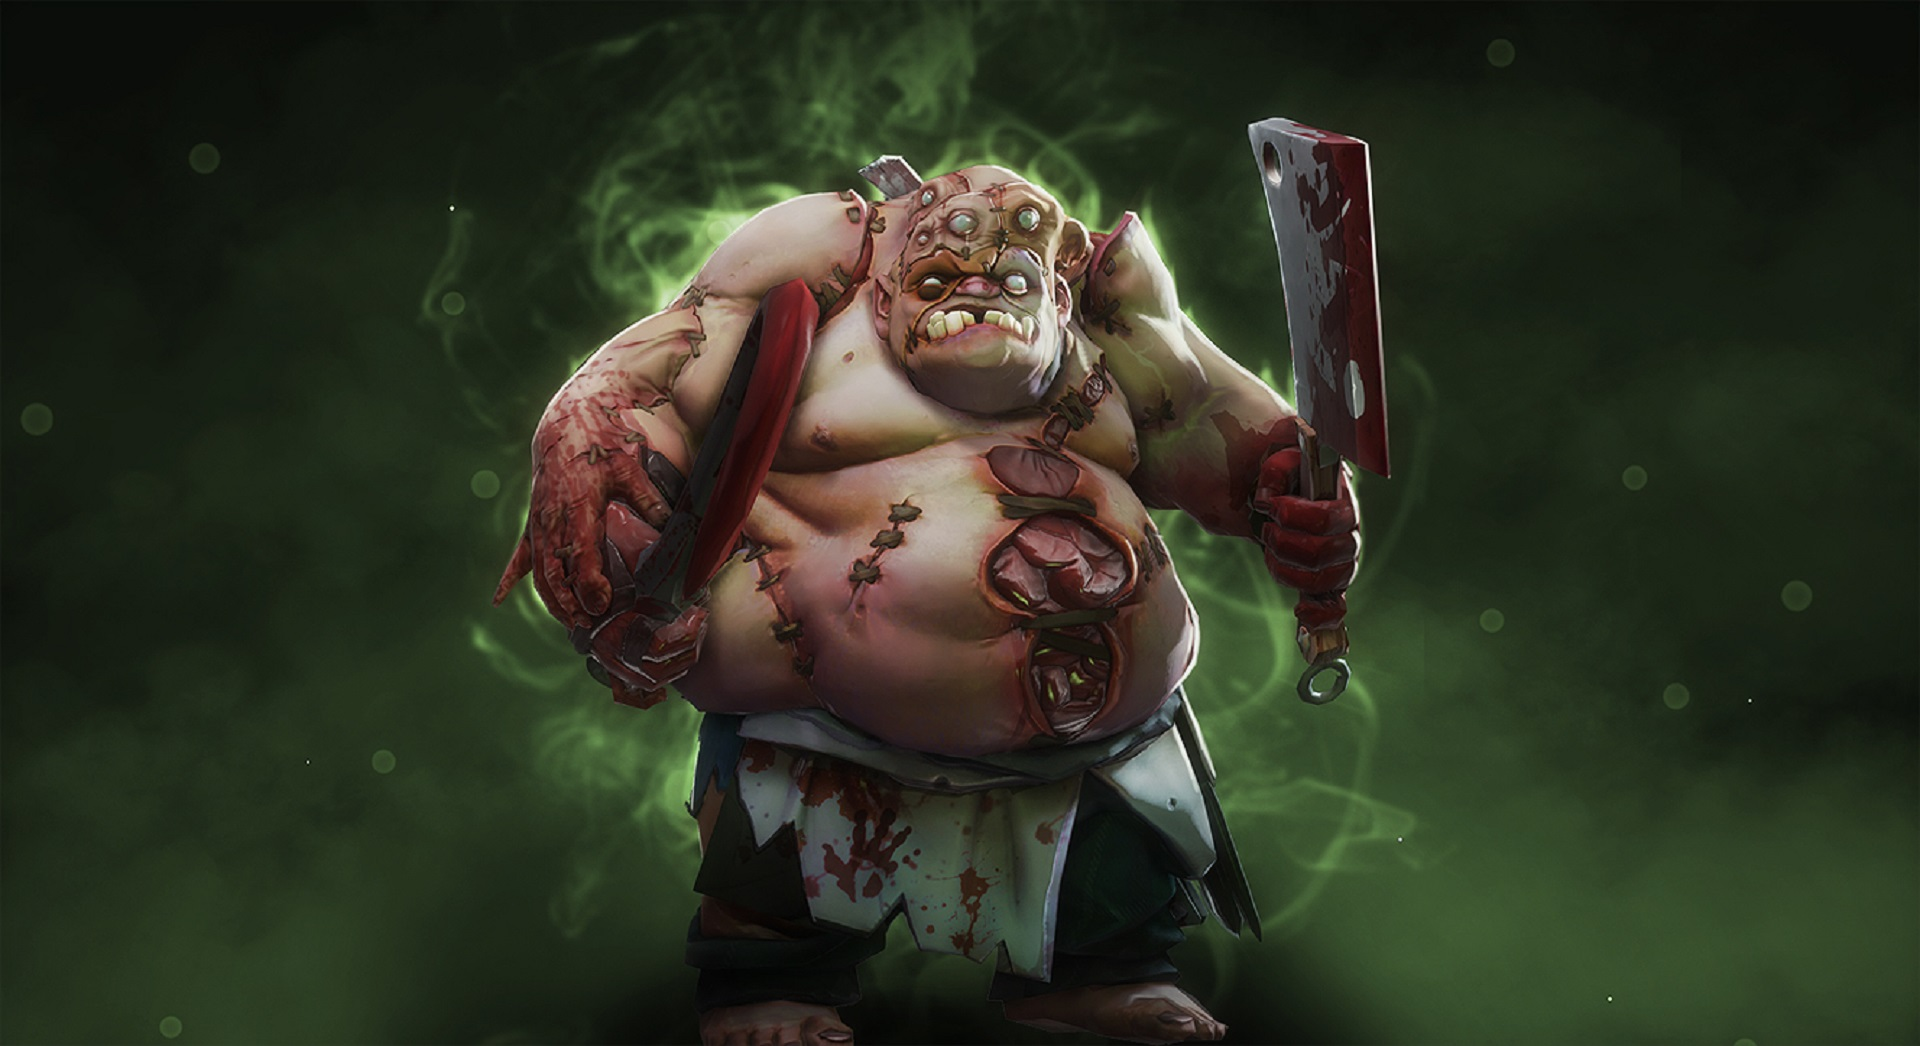 Back of the Fallen - Pudge